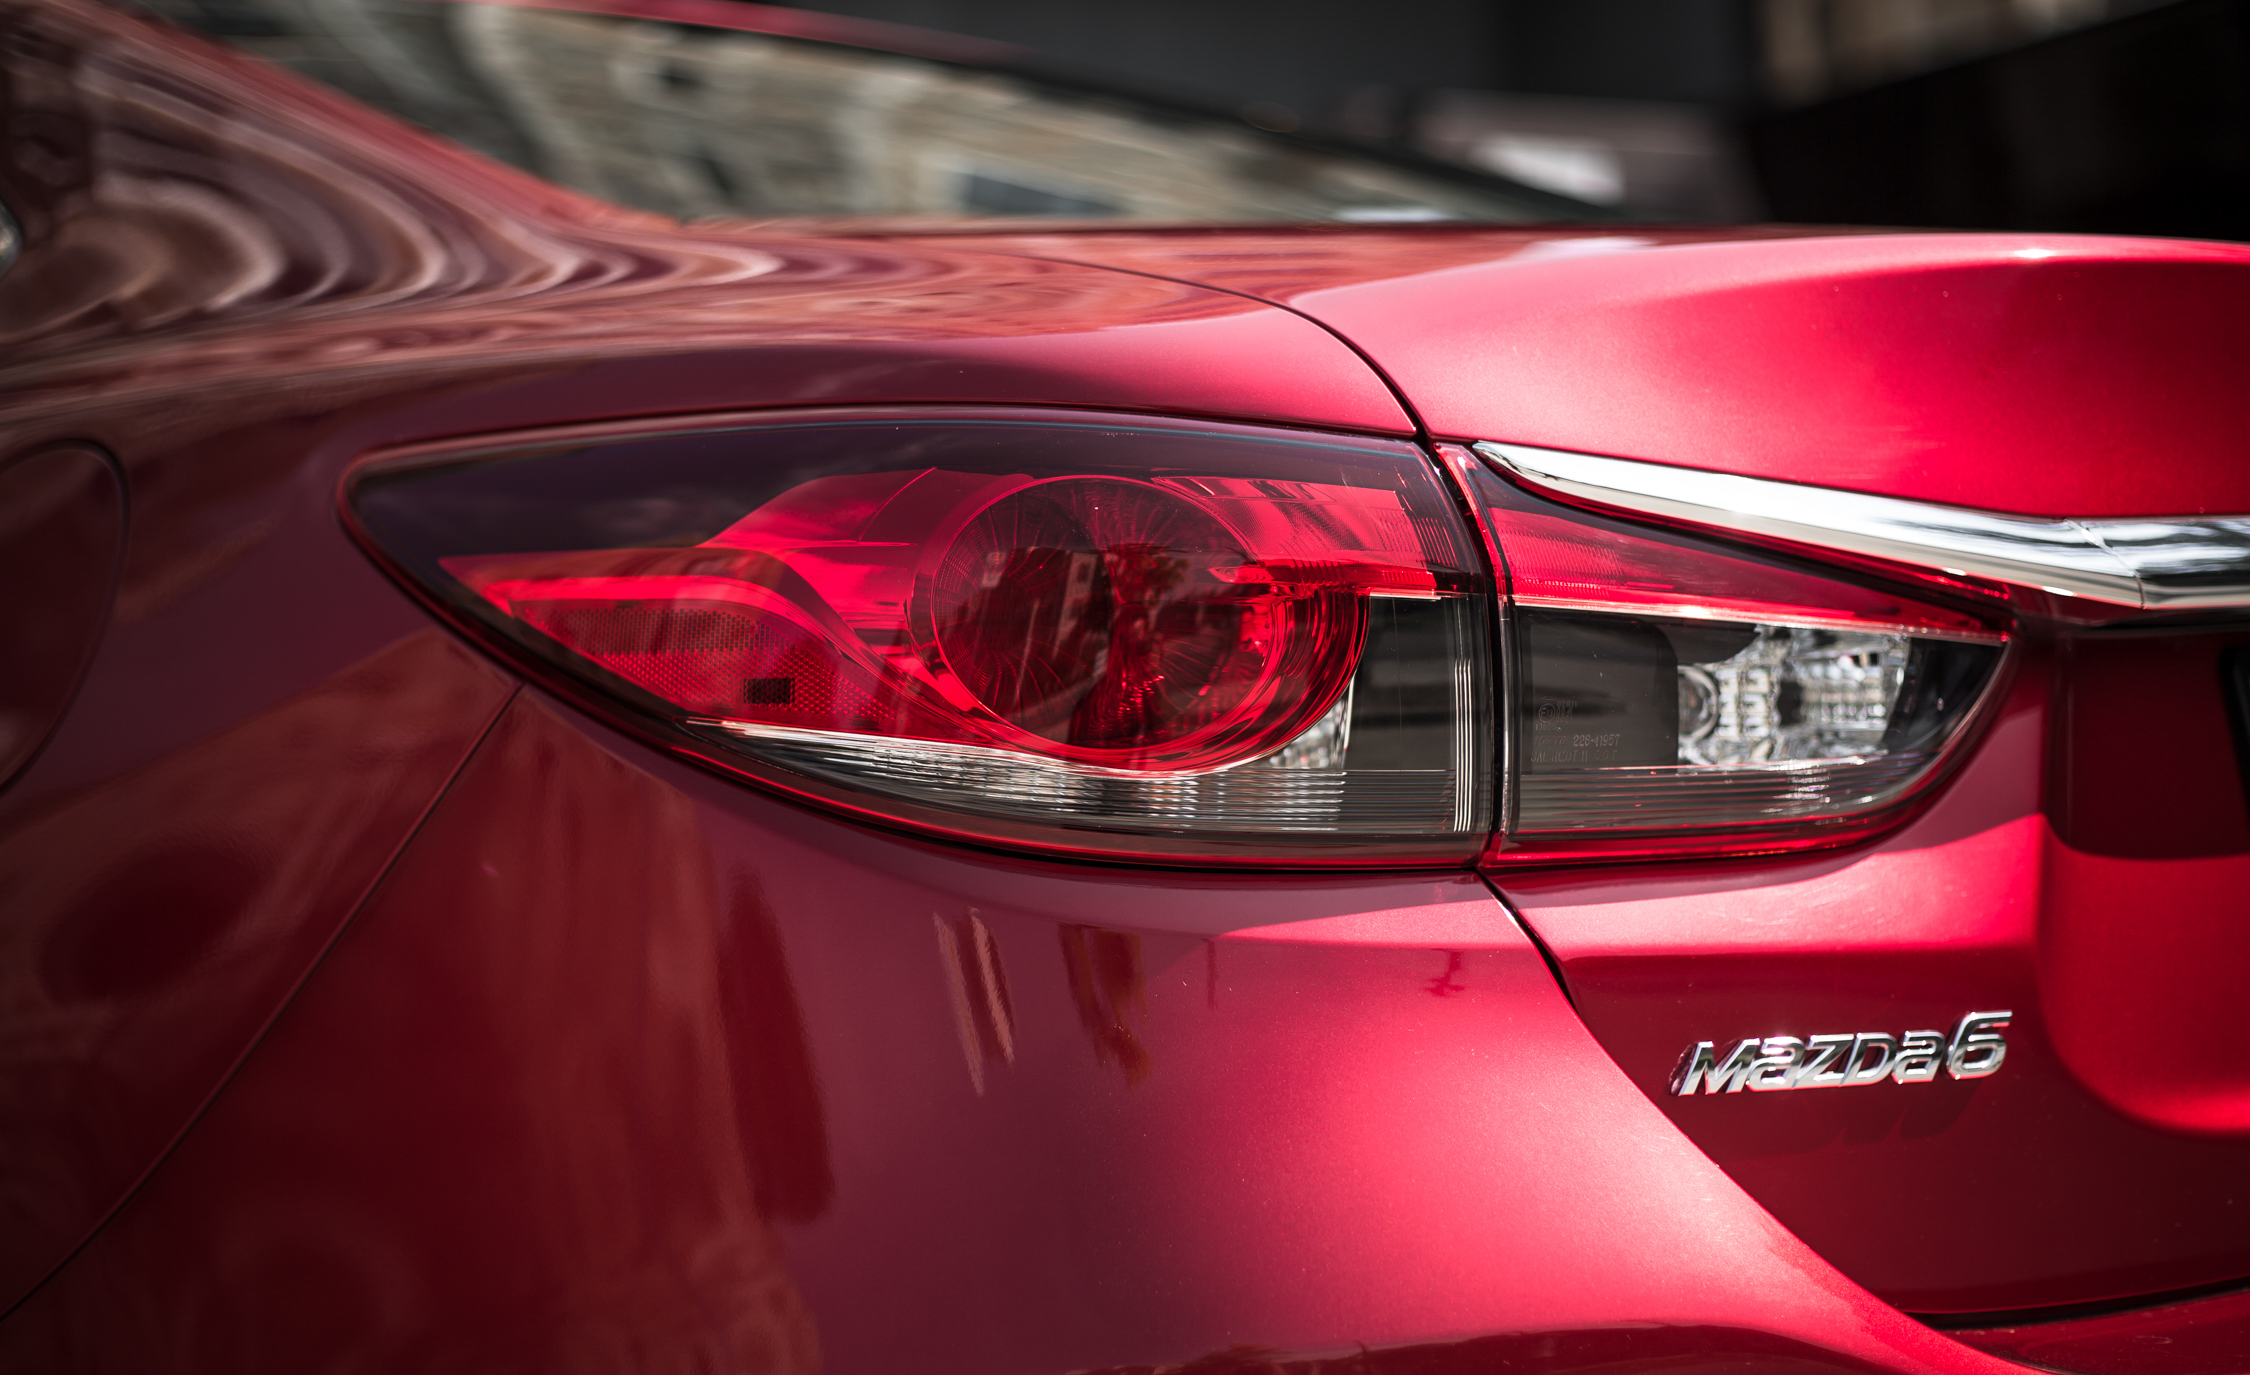 2016 Mazda 6 Touring (View 16 of 23)